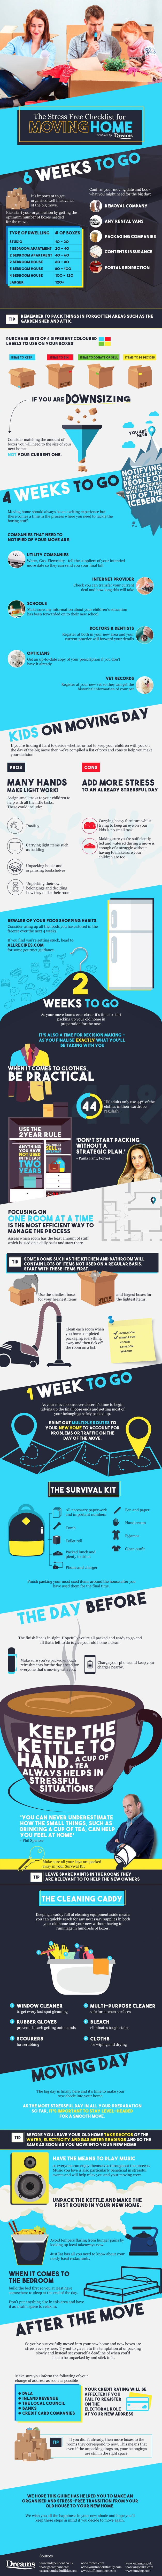 guide to moving home